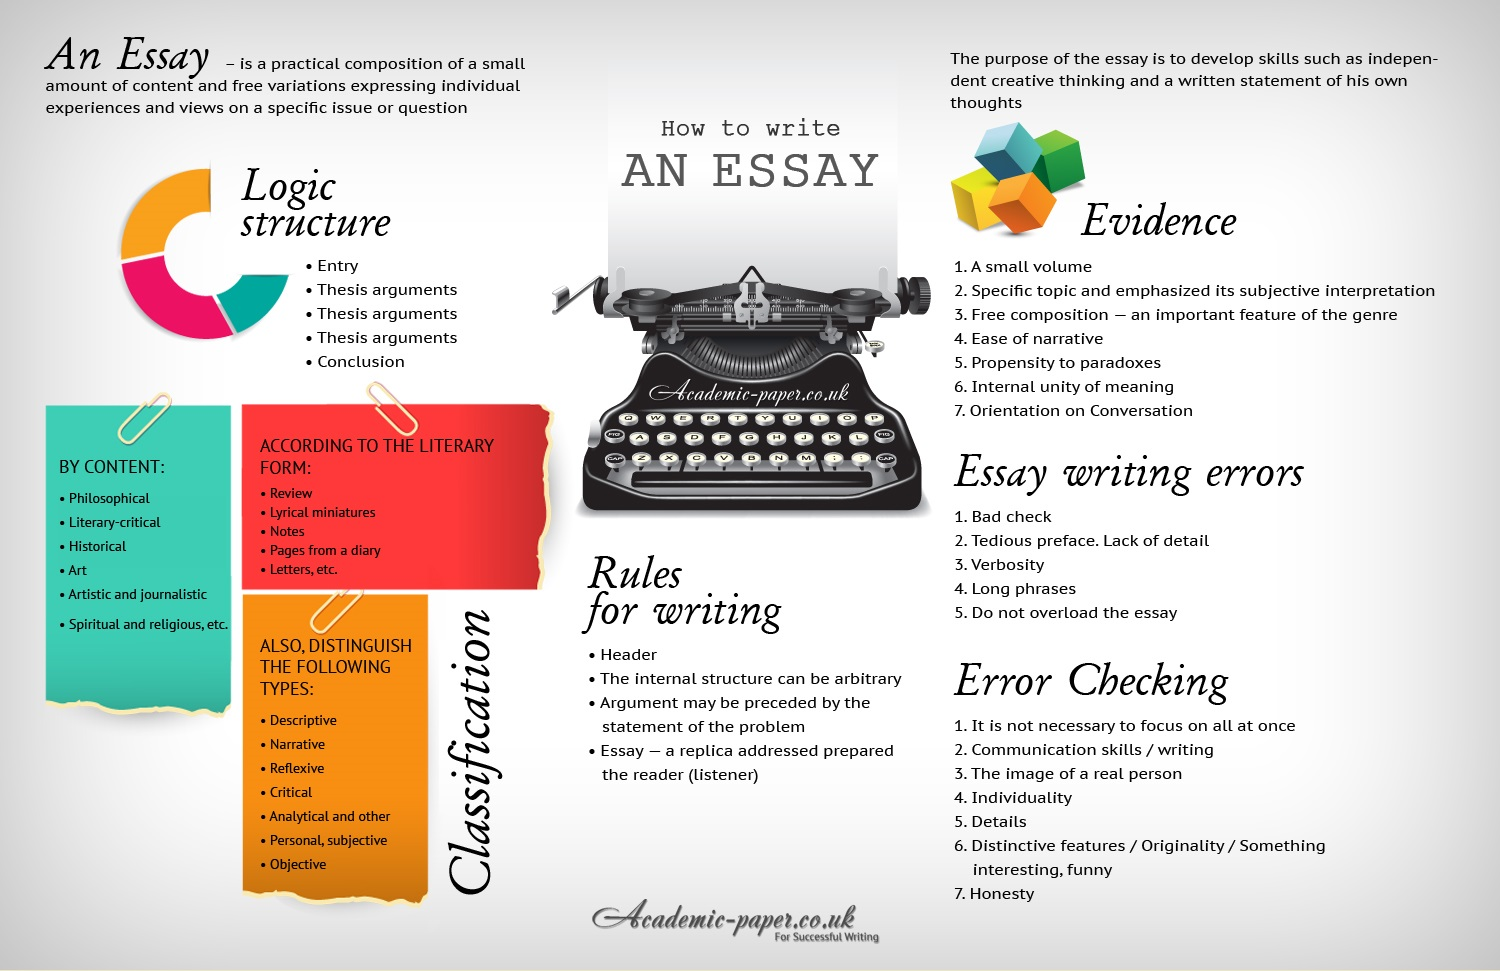 how to write an essay essay In an argumentative essay, you want to convince someone to agree with your idea or opinion, using research-based evidence writing an argumentative essay is a skill that anyone in school needs to know, though it can be useful outside of the classroom, as well.